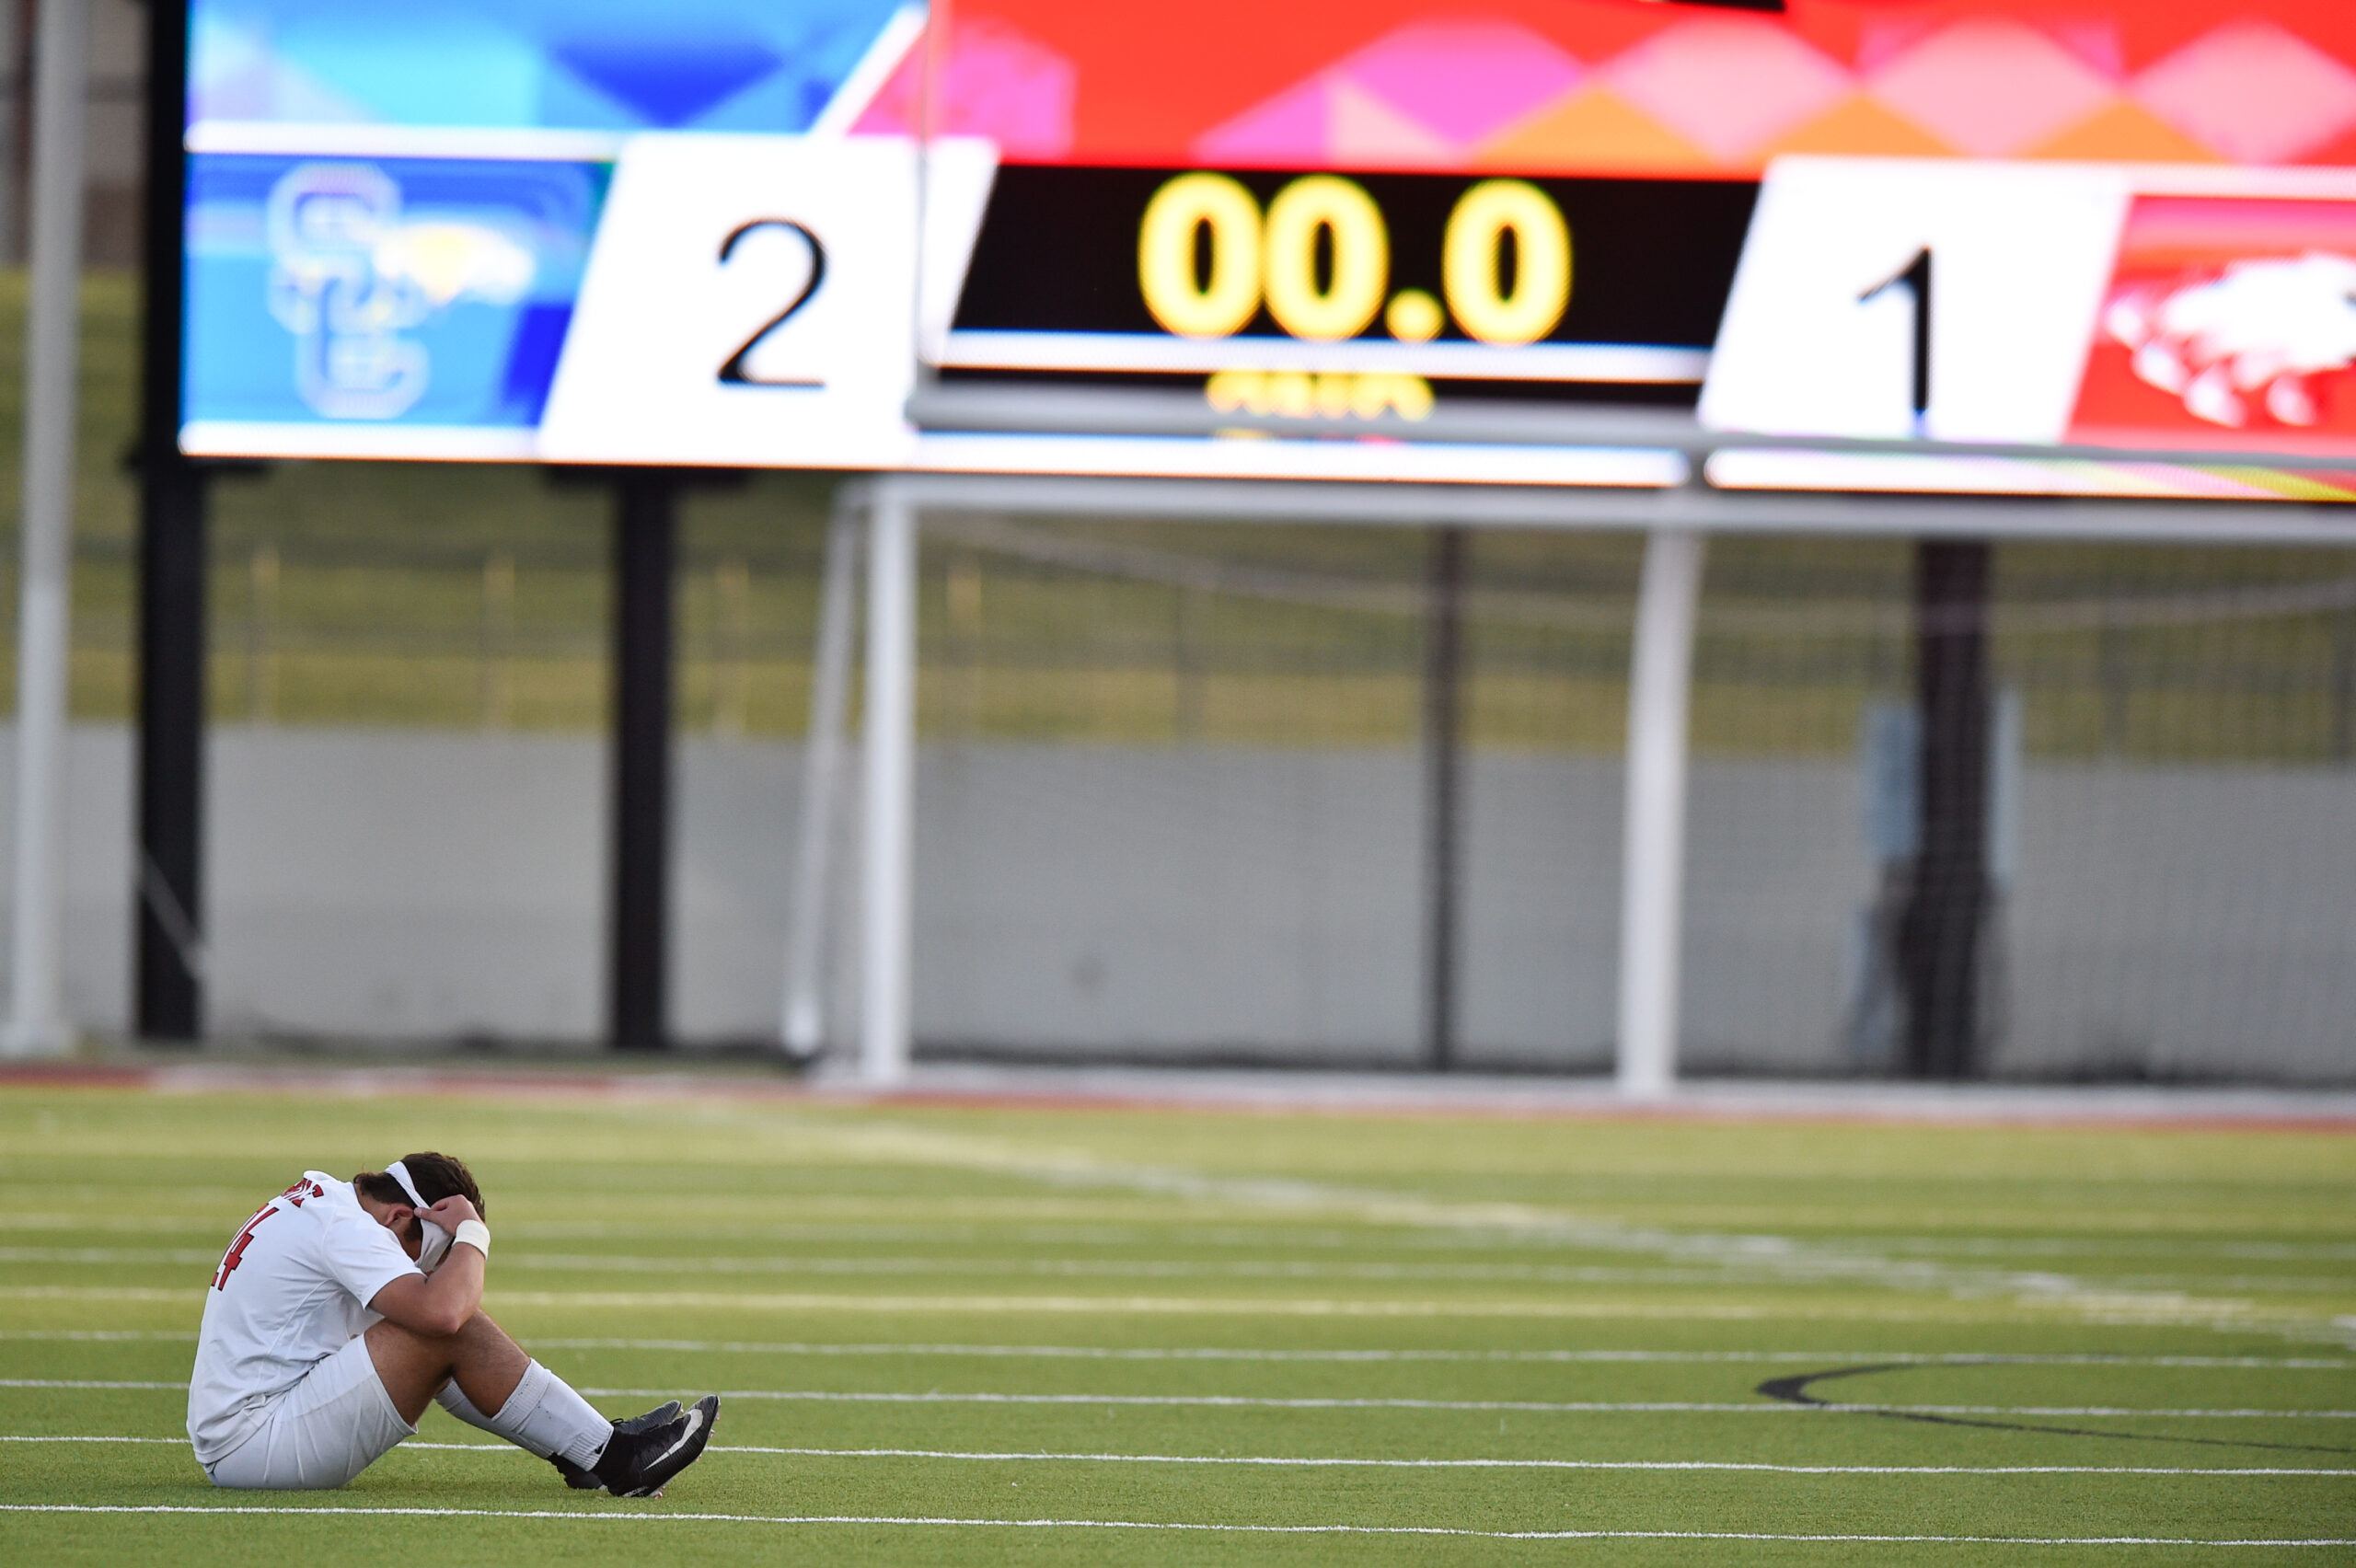 Argyle's Tyler DeBruin (24) puts his head down after his team loses to San Elizario 1-2 at Northwest I.S.D. Stadium, Friday, April 12, 2019, in Justin, Texas.